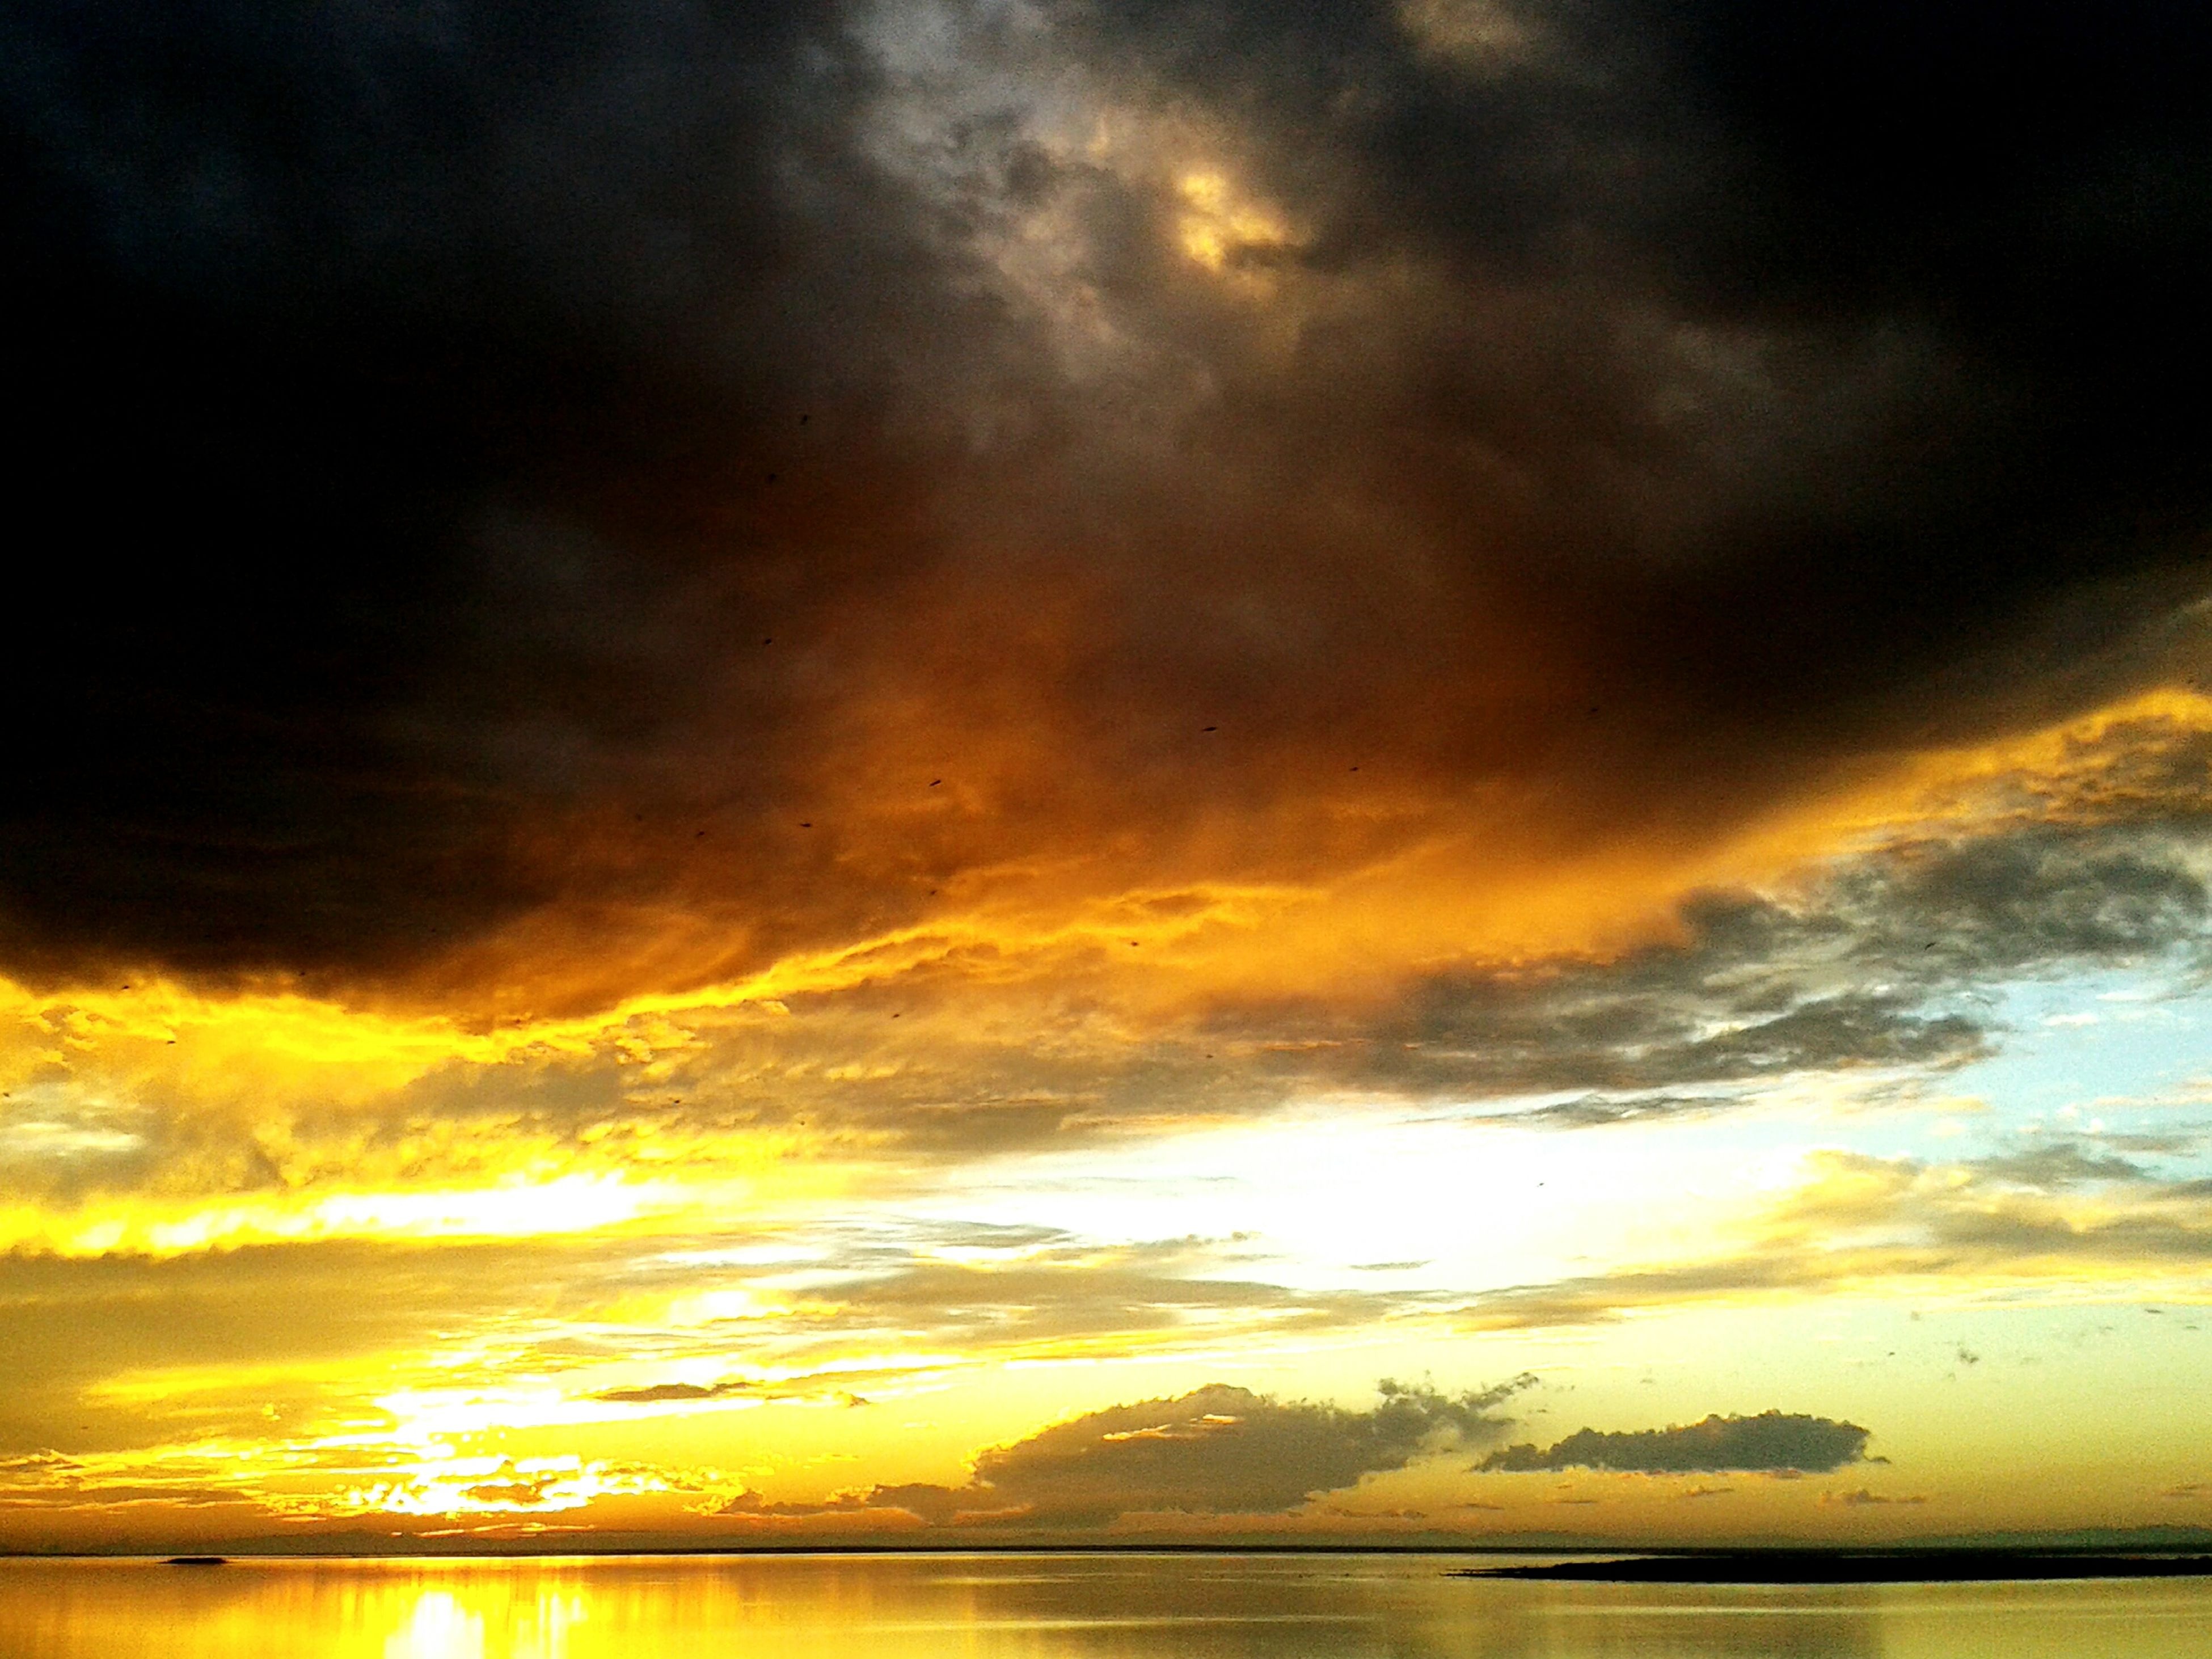 sunset, water, scenics, sky, sea, tranquil scene, beauty in nature, tranquility, cloud - sky, waterfront, idyllic, horizon over water, nature, orange color, reflection, cloudy, dramatic sky, cloud, silhouette, majestic